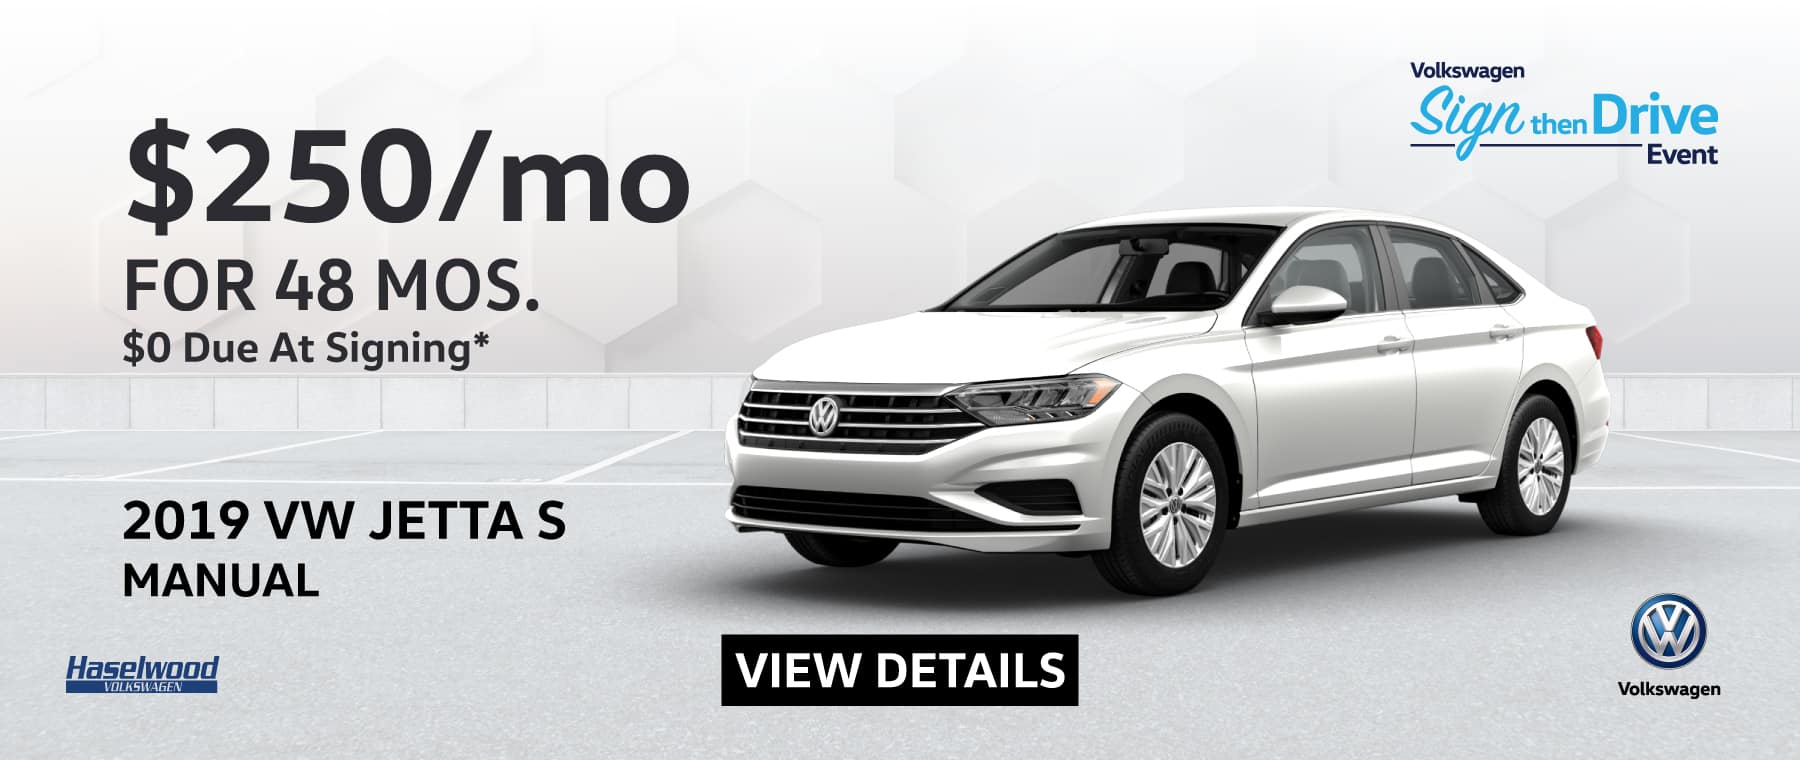 2019 Volkswagen Jetta S Manual $250/mo. for 48 months $0 Due at Signing * Offer valid on 2019 Volkswagen Jetta S Manual. $250 per mo. For 48 months. Lease with $0 due at signing; includes a $595 acquisition fee, lease through Volkswagen Credit. No security deposit required. Valid on VIN: 3VWN57BUXKM115492, 3VWN57BU4KM119022, 3VWN57BUXKM115069. For highly qualified customers on approved top tier credit through Volkswagen Credit. Lessee responsible for maintenance, excessive wear/tear and 20¢/mi over 10K mi/yr. Excludes state and local taxes, tags, registration and title, insurance and dealer charges. Subject to credit approval. 48 monthly payments required. Monthly lease payment based on MSRP of $20,160 and destination charges less a suggested dealer contribution resulting in a Gross capitalized cost of $18,920. Cap cost reduction: $0. A negotiable dealer documentary service fee of up to $150 may be added to the sale price or capitalized cost. See dealer for complete details and restrictions. 6 years/72,000 miles (whichever occurs first). New Vehicle Limited Warranty on MY2018 and newer VW vehicles, excluding e-Golf. See owner's literature or dealer for warranty exclusions and limitations. Exp. 12/1/2019.